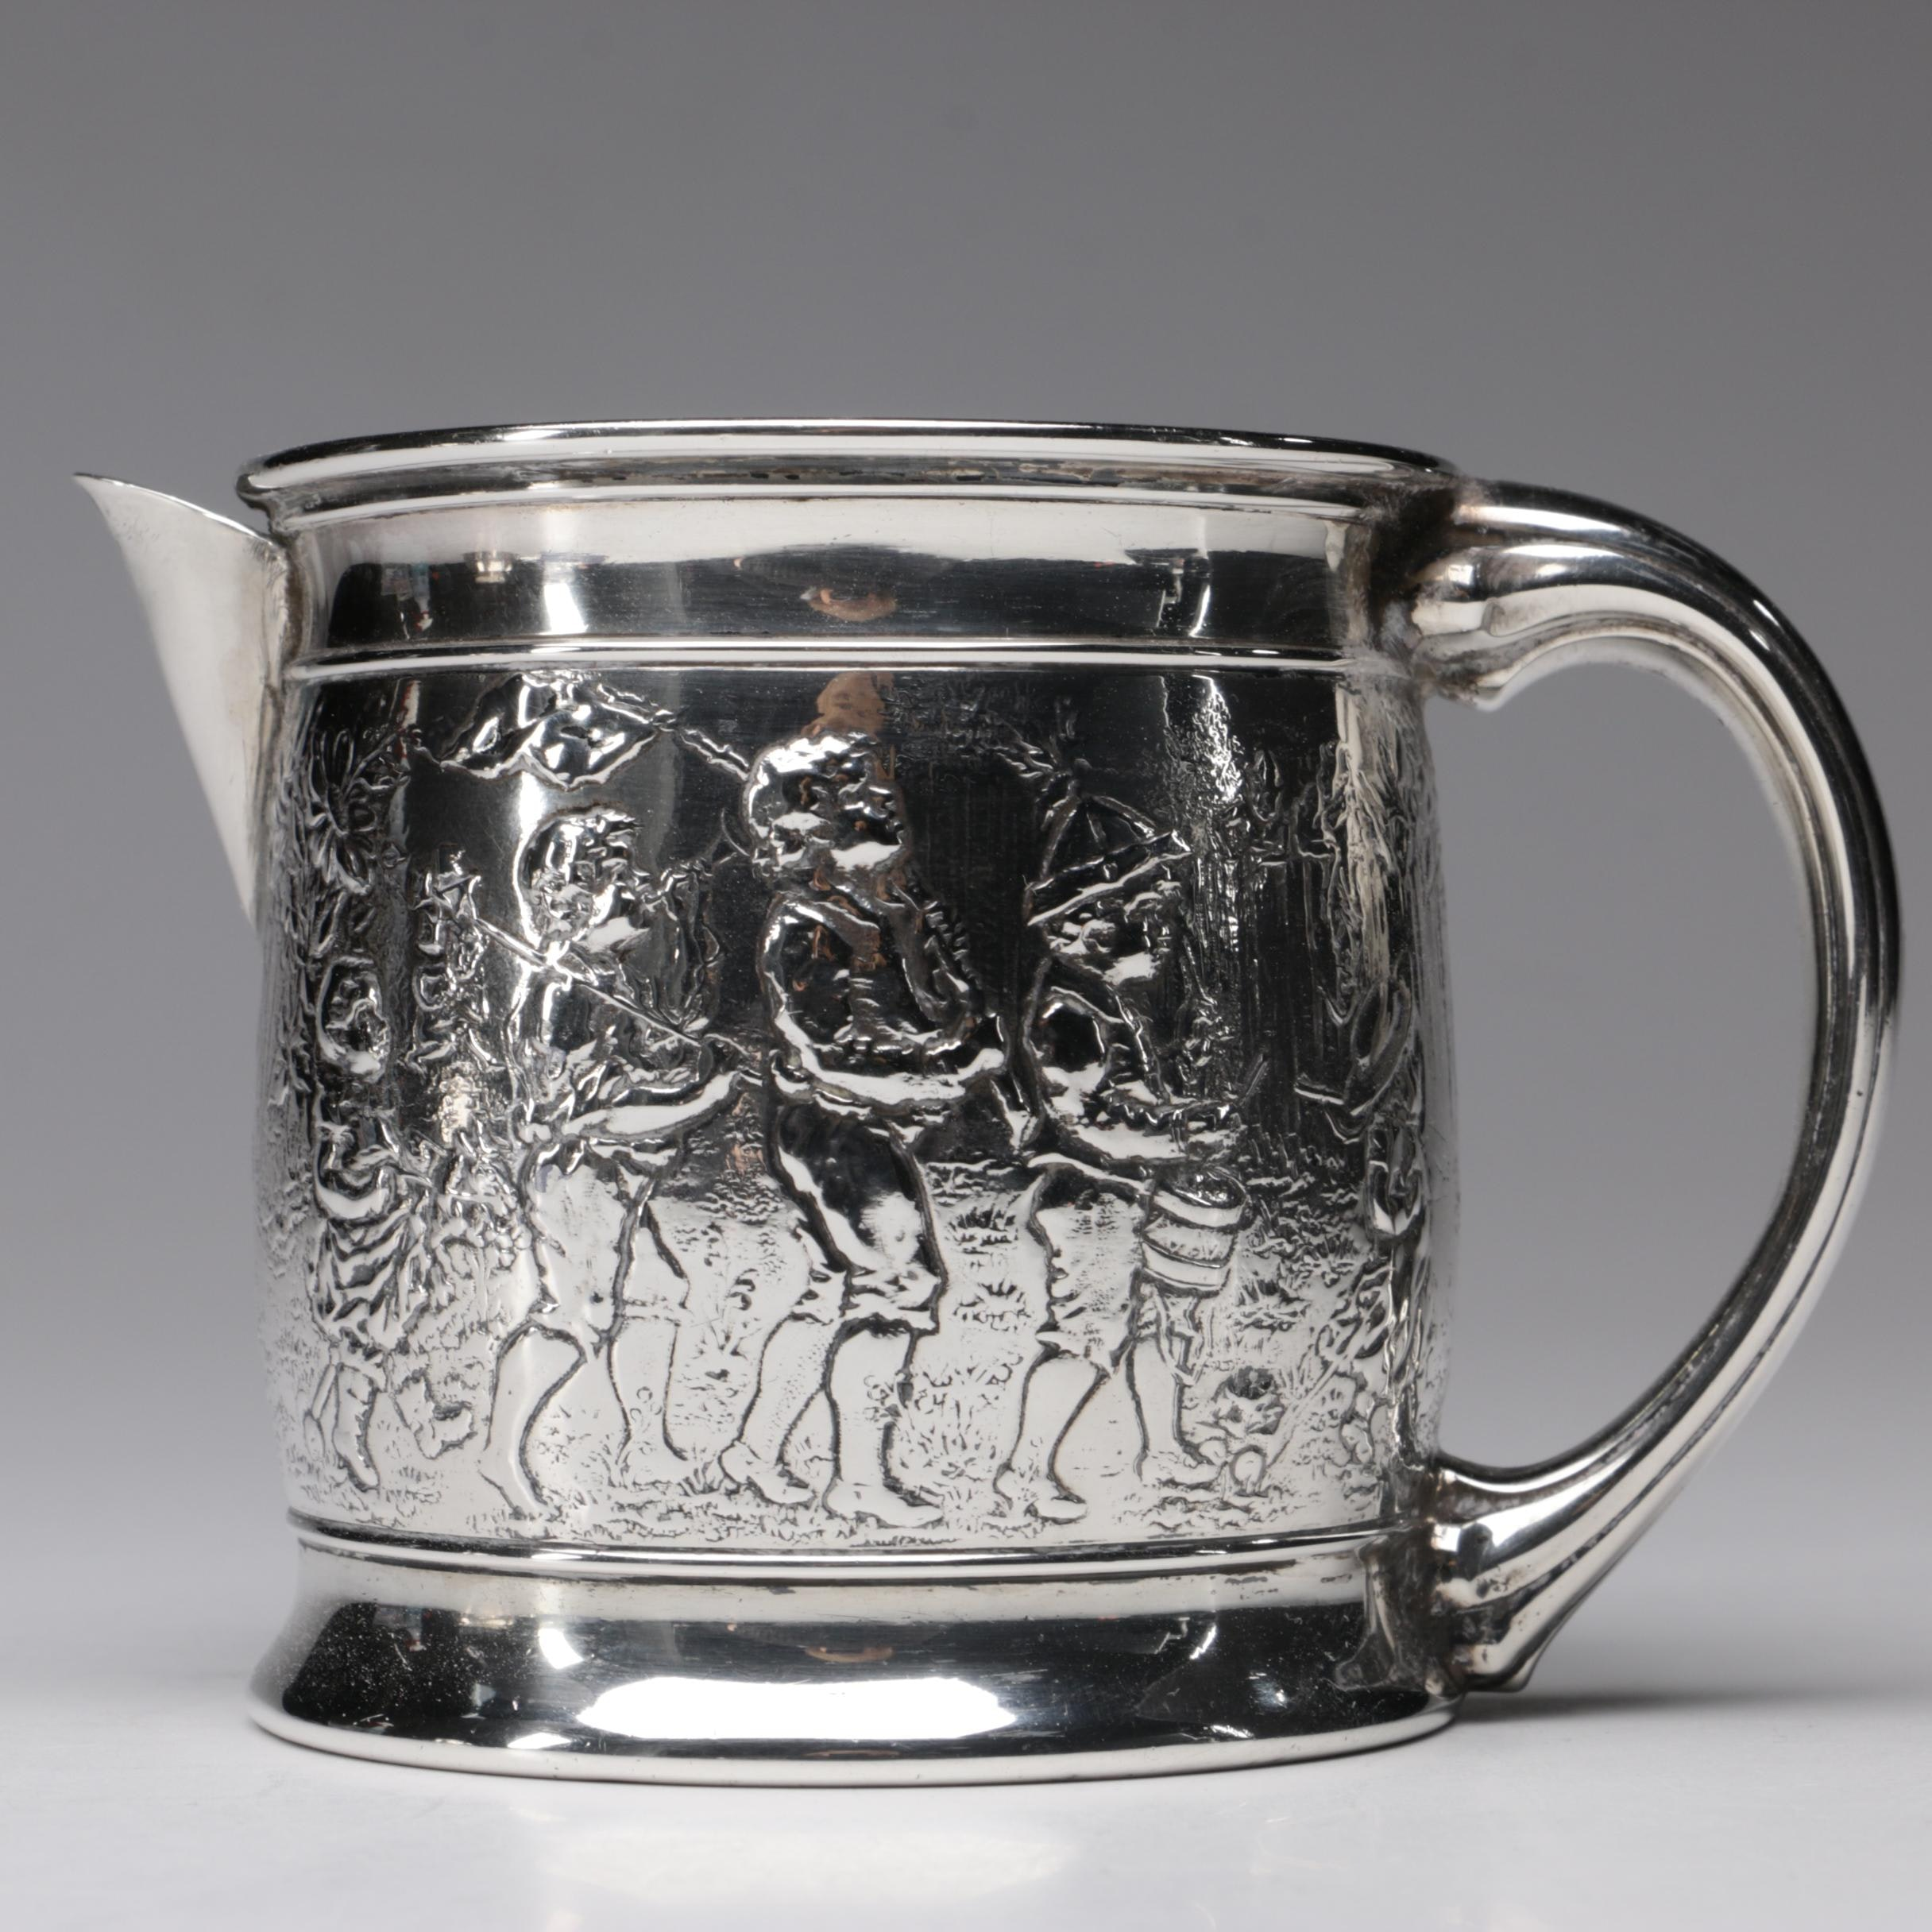 British Import Sterling Silver Pitcher with Children on Parade Motif